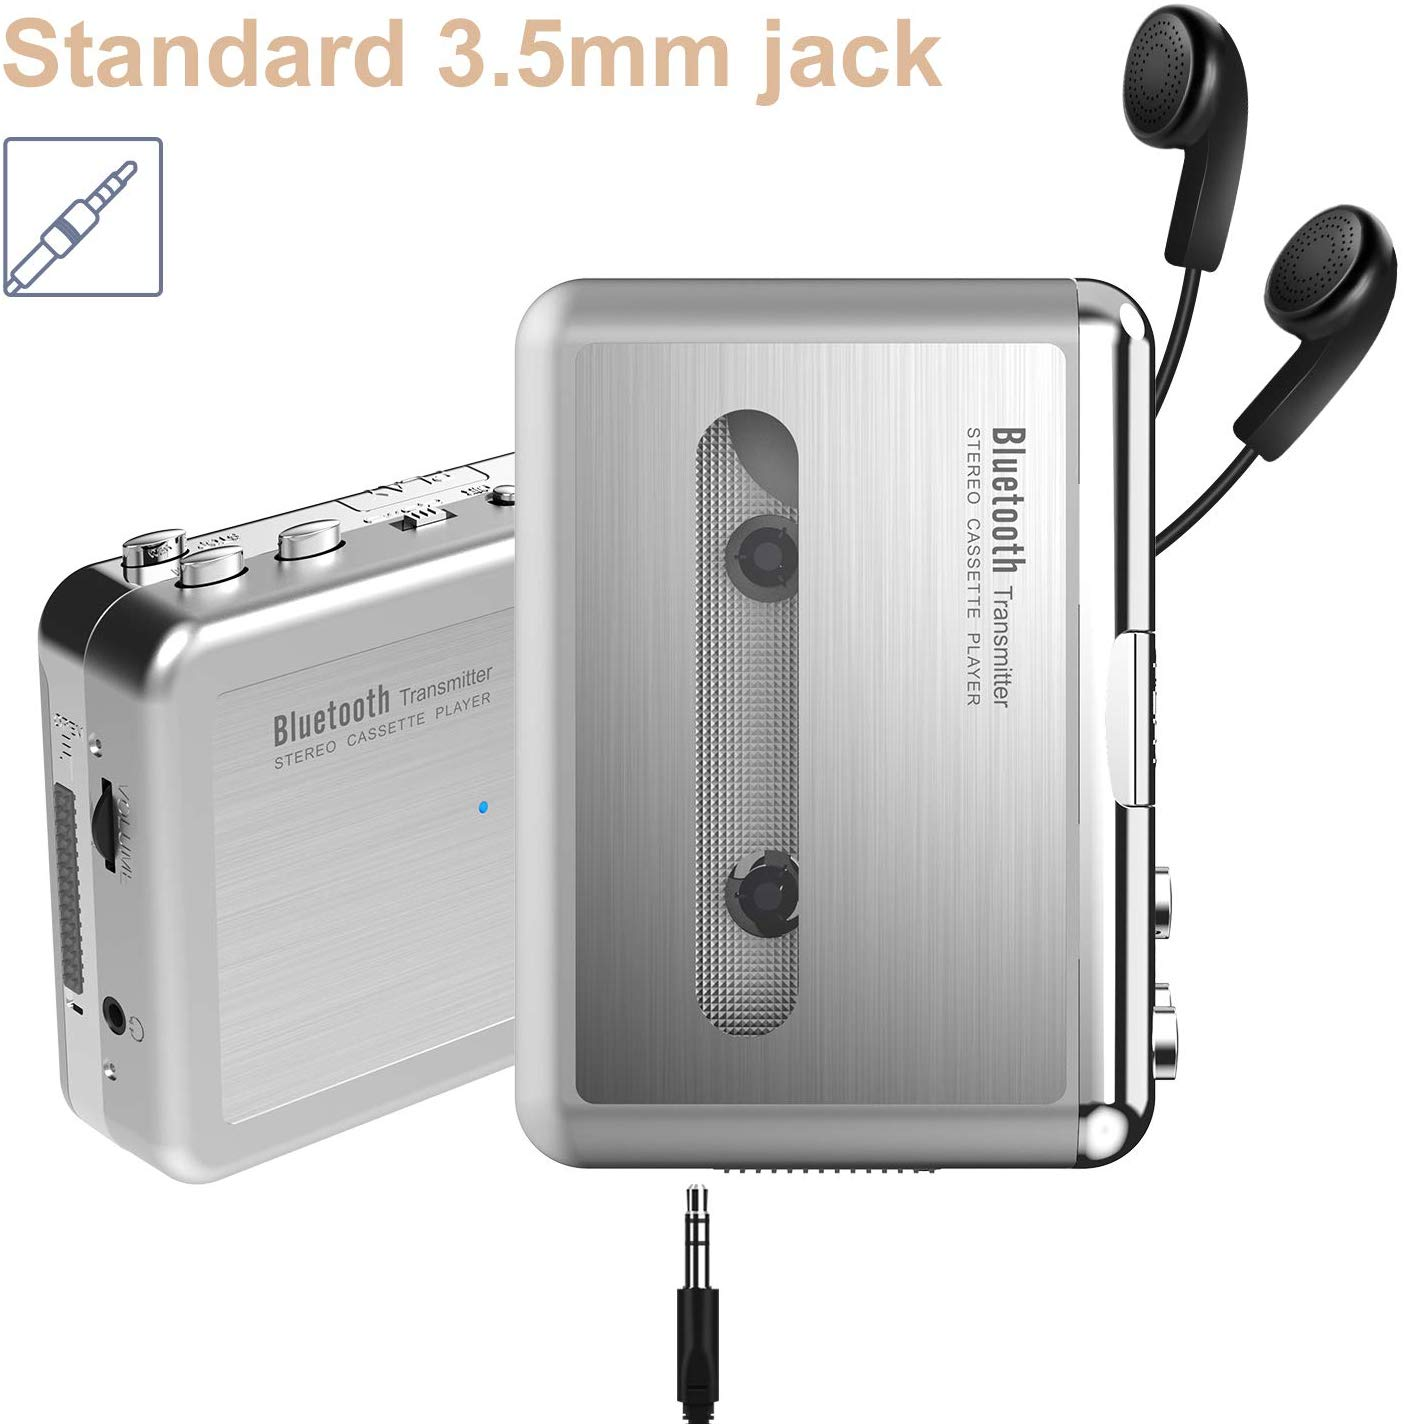 BR636B DIGITNOW! Bluetooth Walkman Cassette Player Bluetooth Transfer Personal Cassette, 3.5mm Headphone Jack and Earphones Included